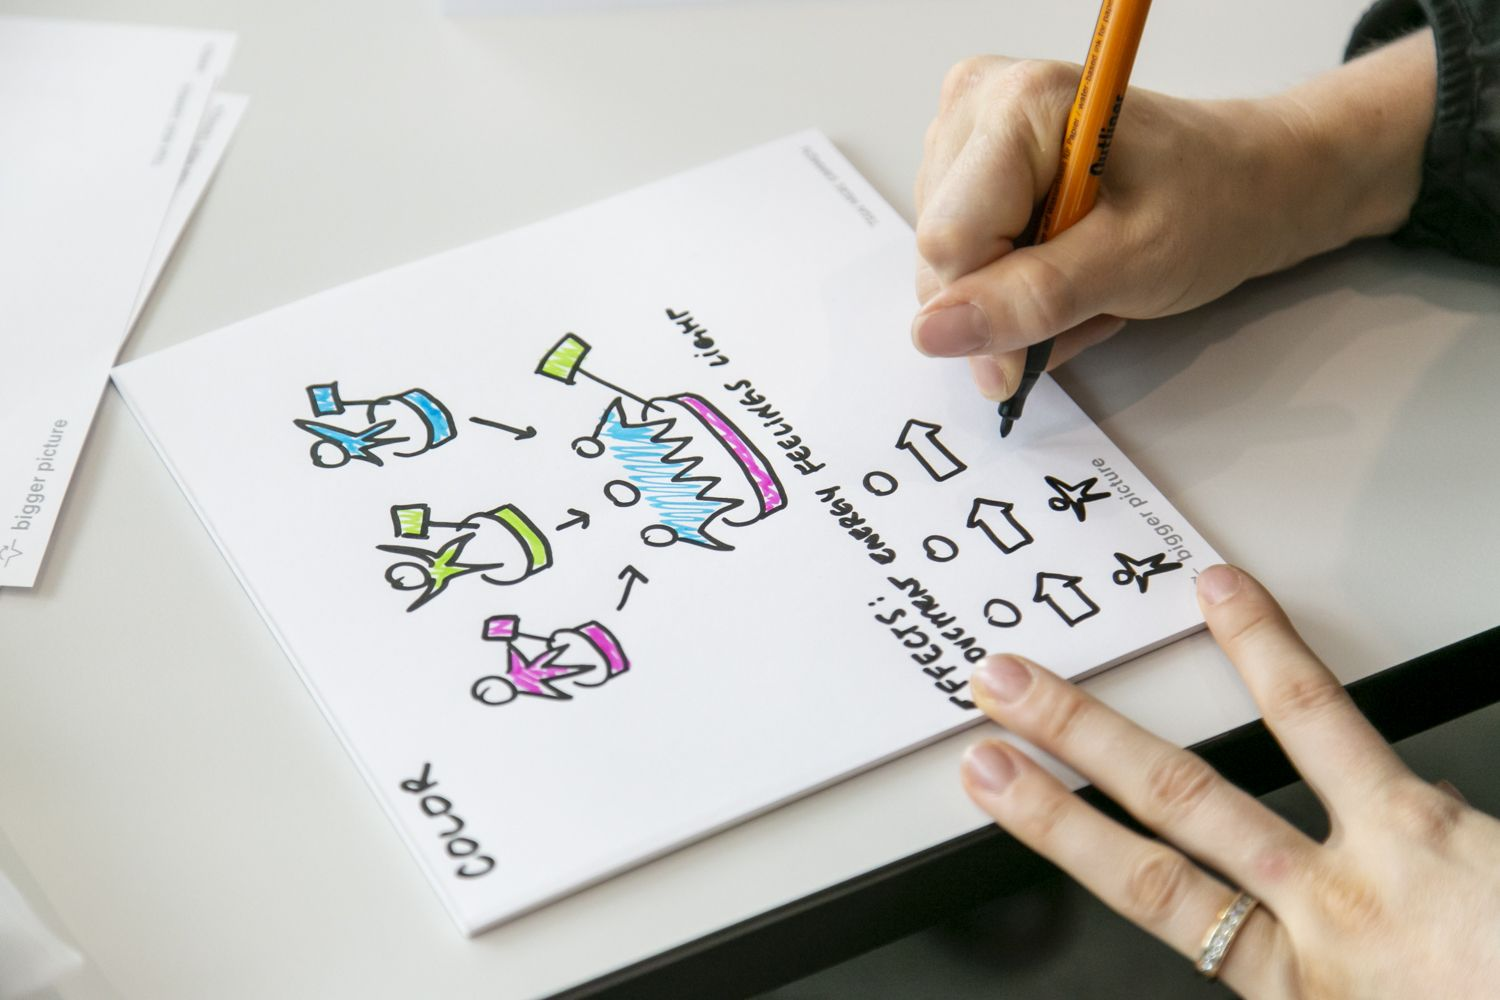 No drawing skills are needed<span>It's all about tapping in to our brain's visual capacity.</span>